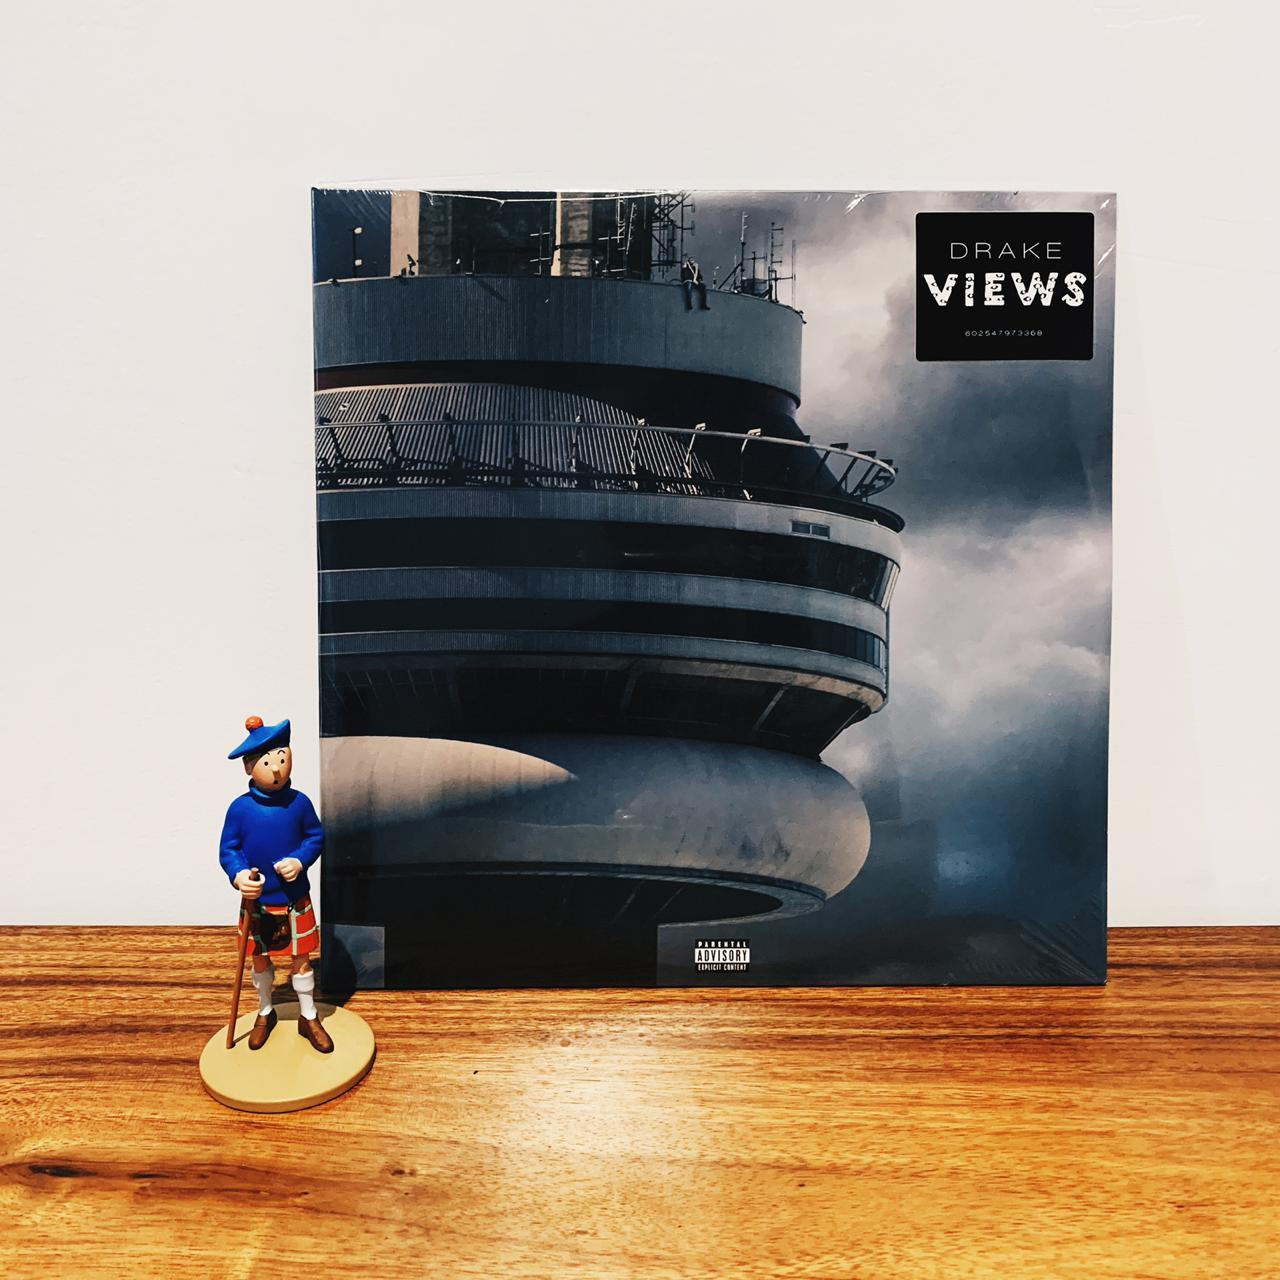 Piringan Hitam / Vinyl / Lp Drake - Views By Playlist Record Store